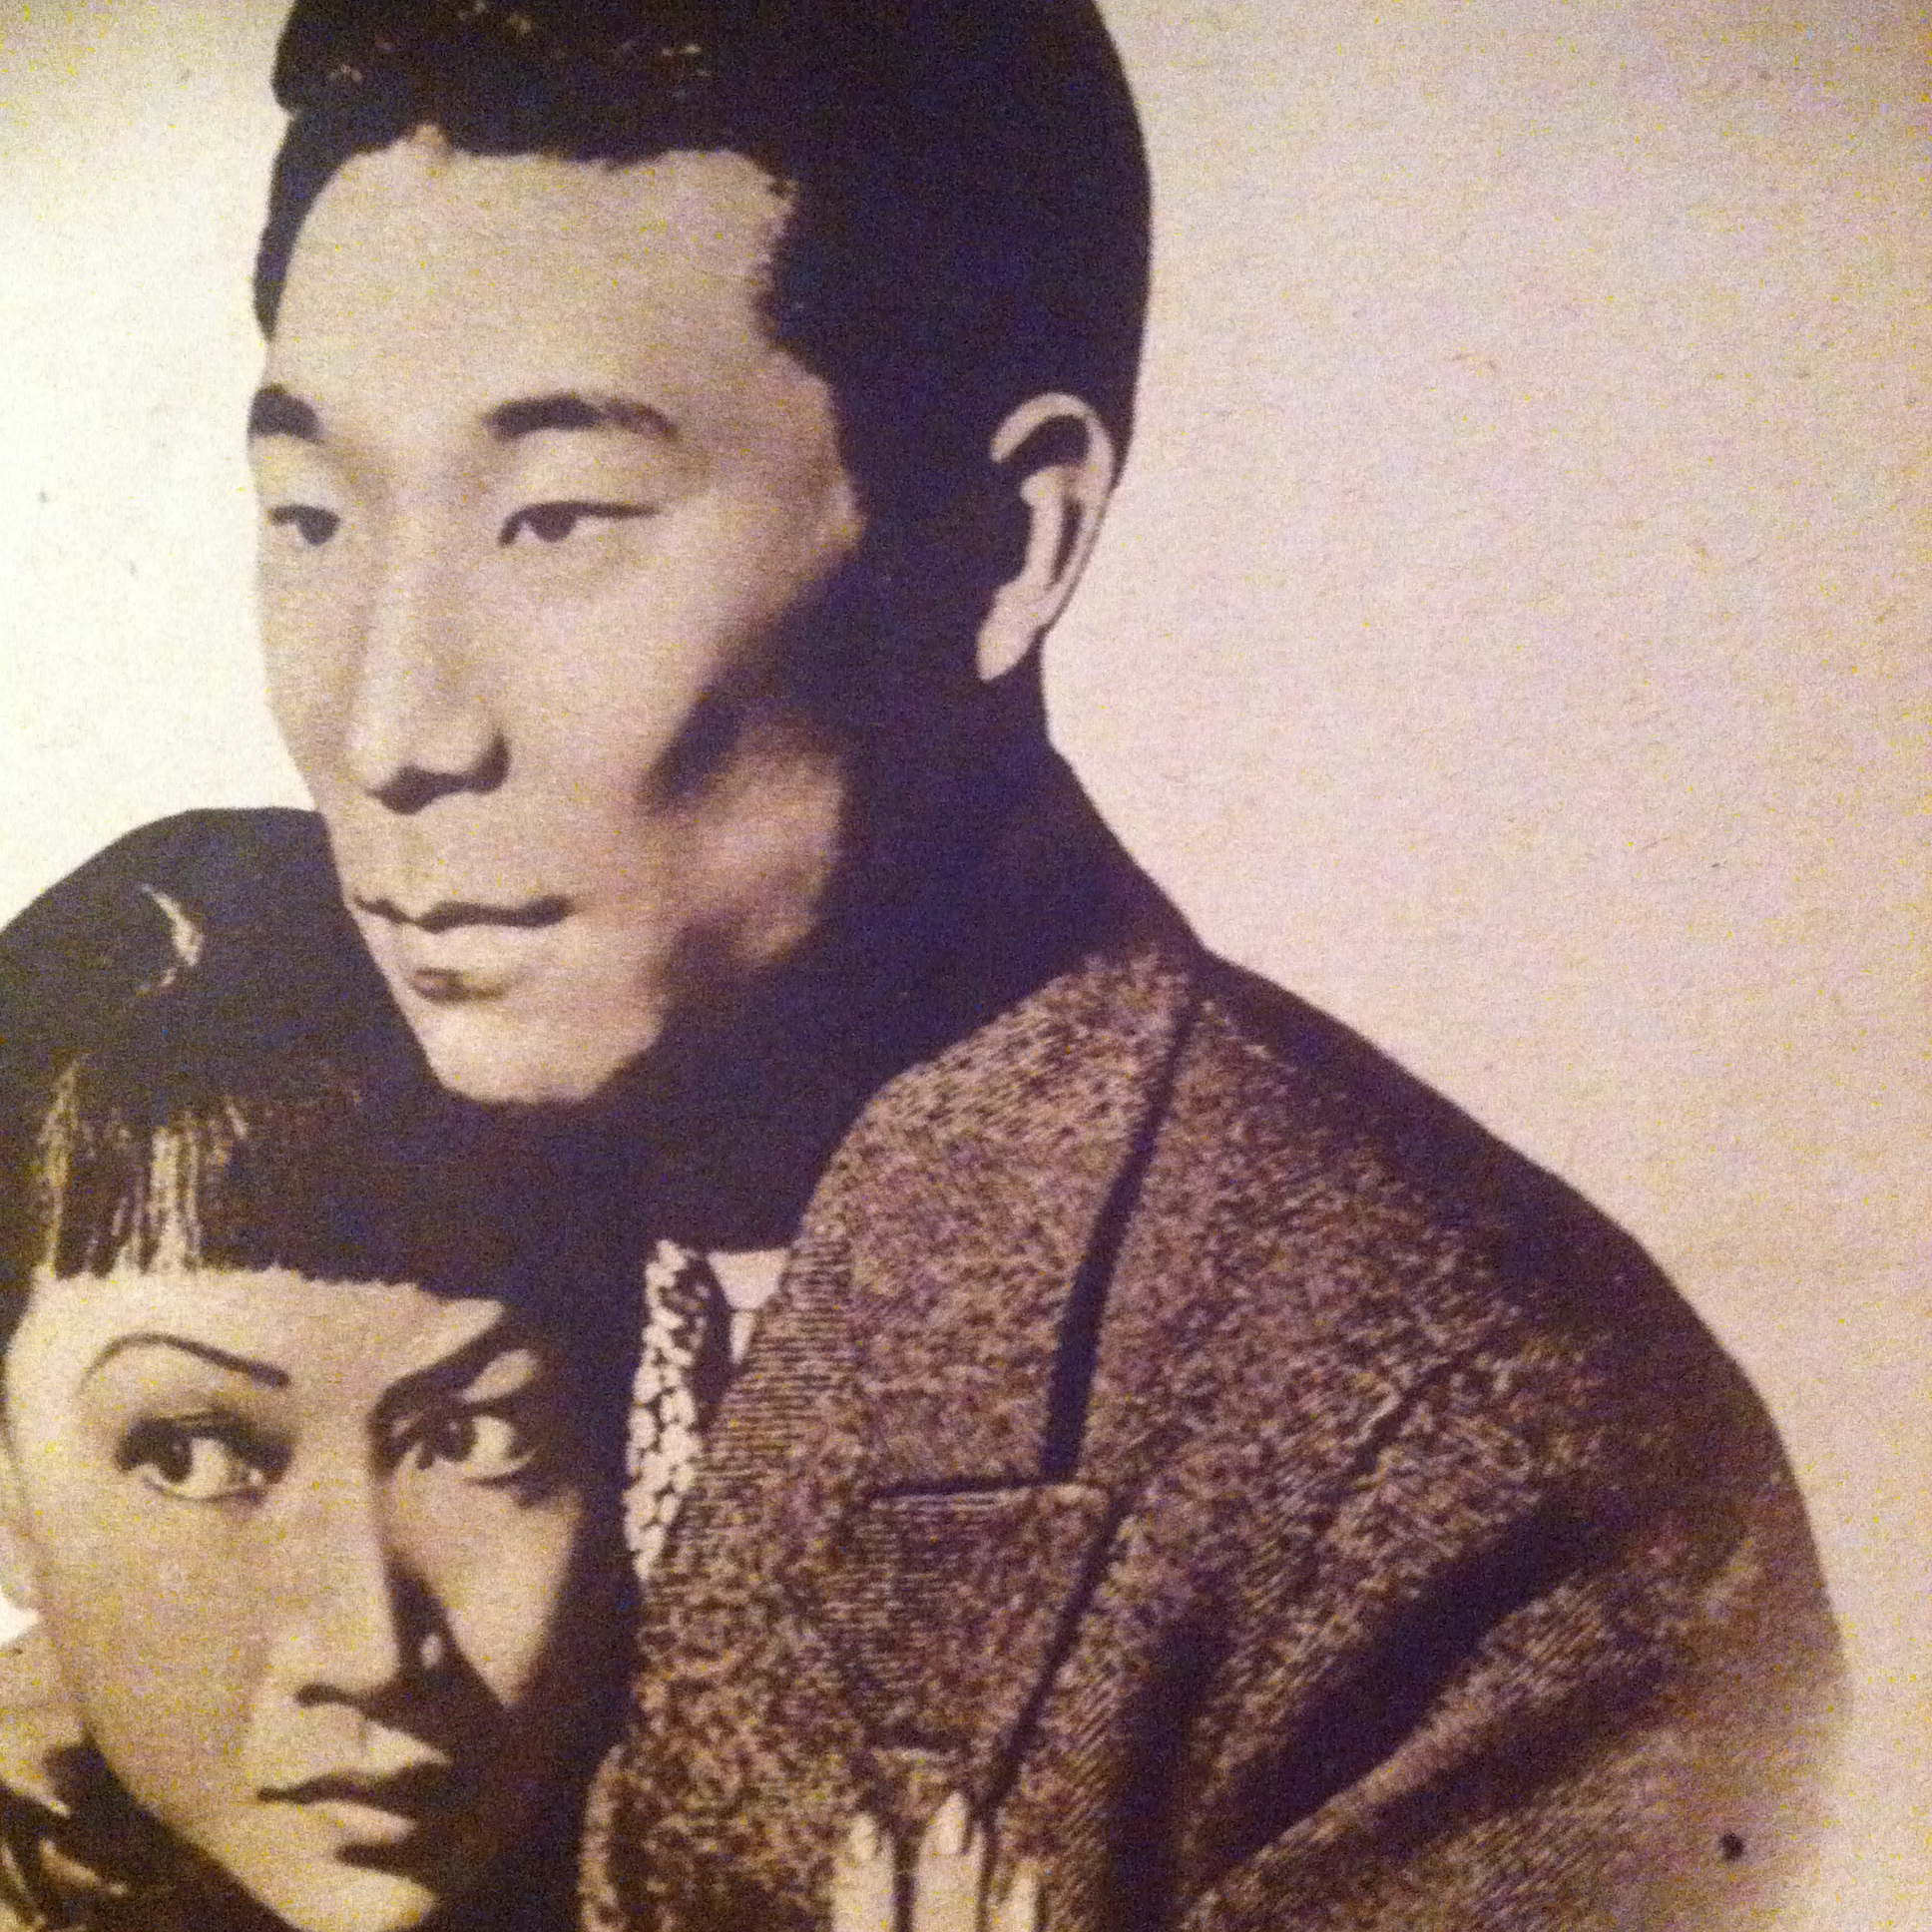 Philip Ahn and Anna May Wong in Daughter of Shanghai (1937)